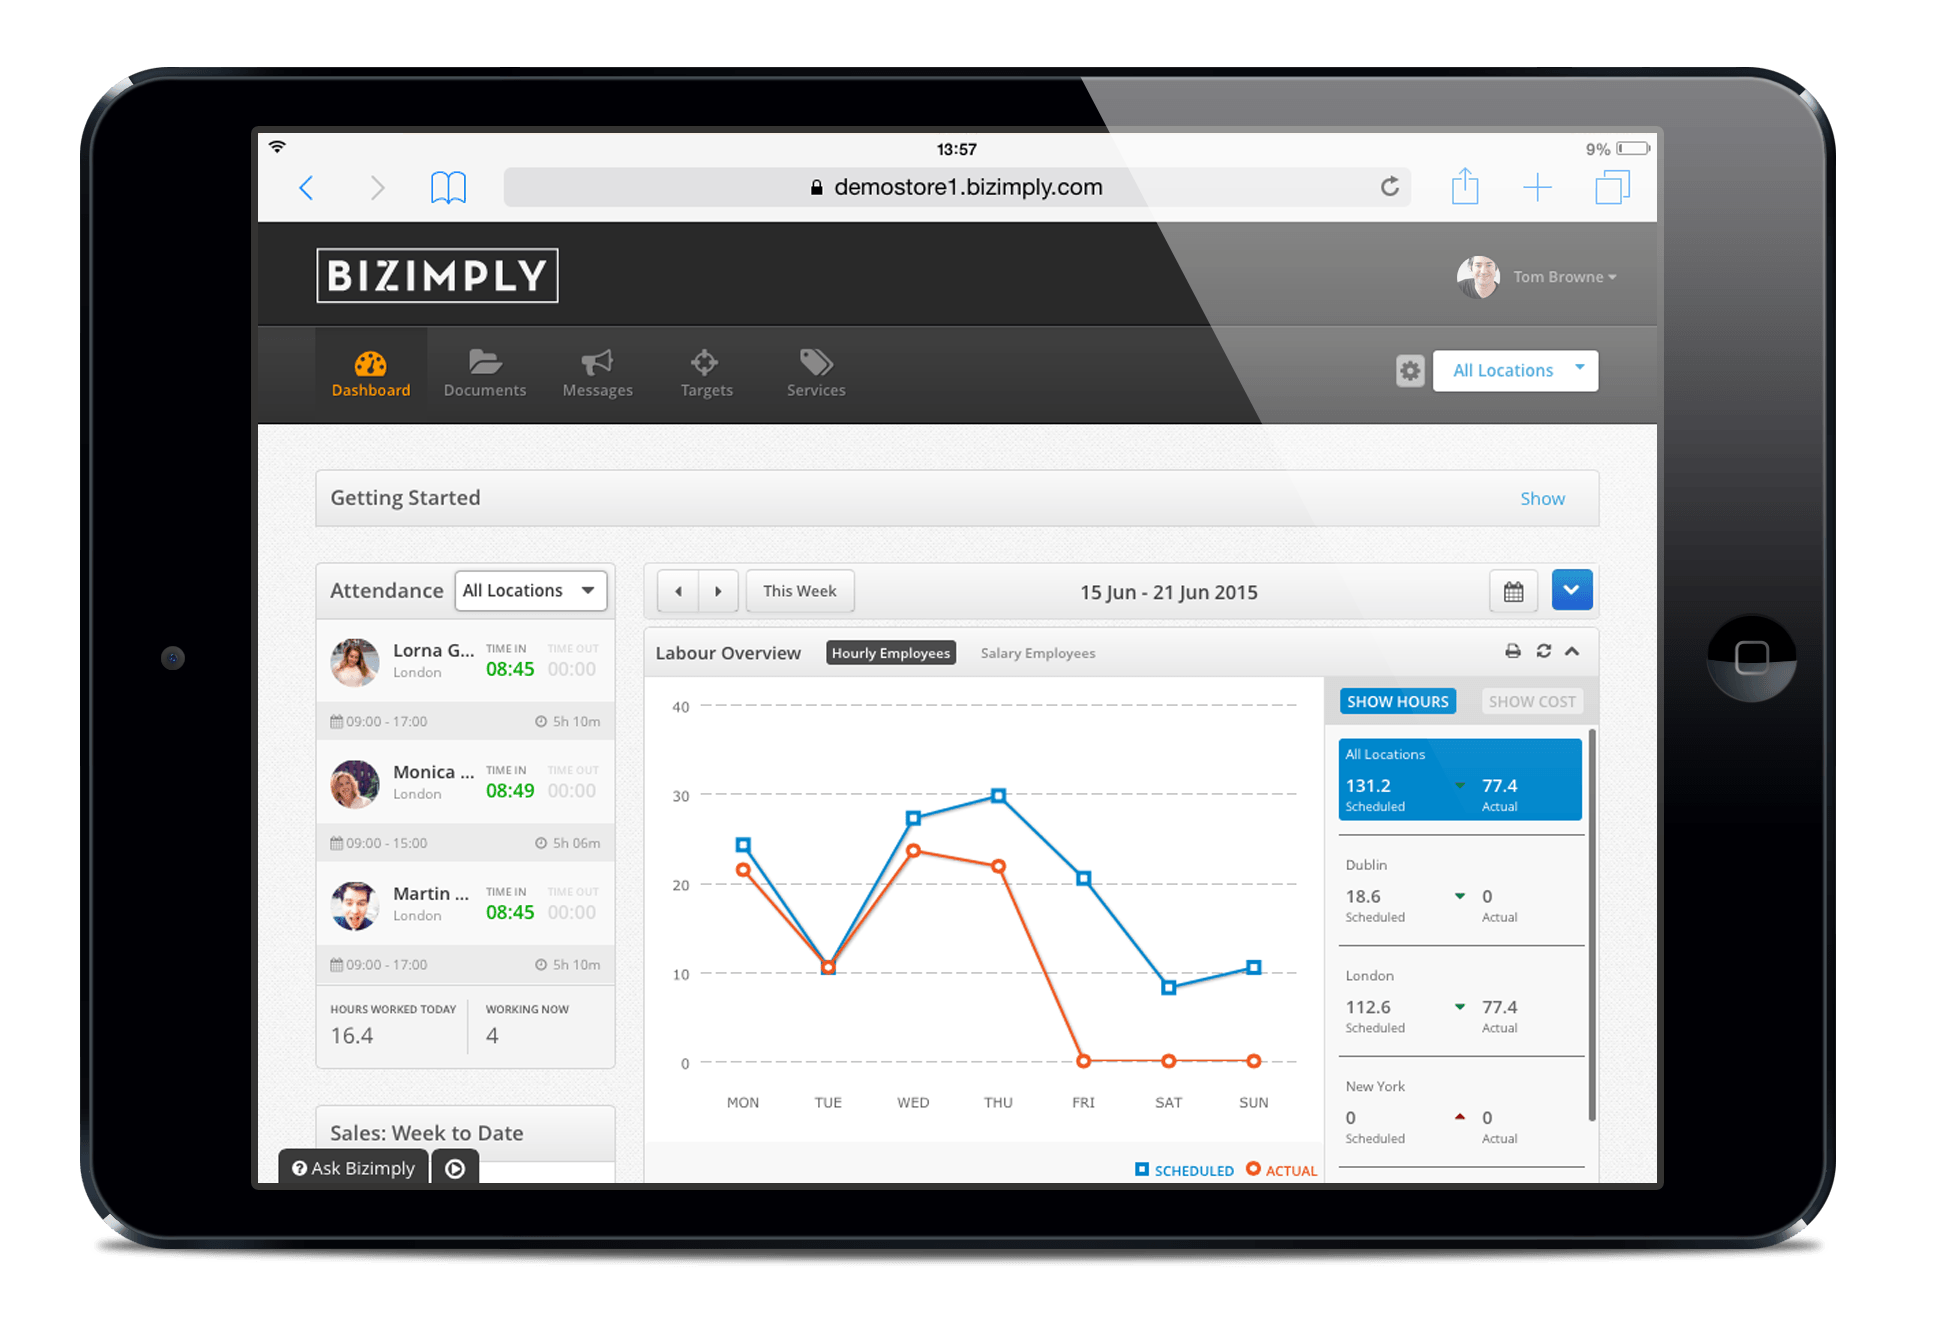 View live attendance and employee shift data by location